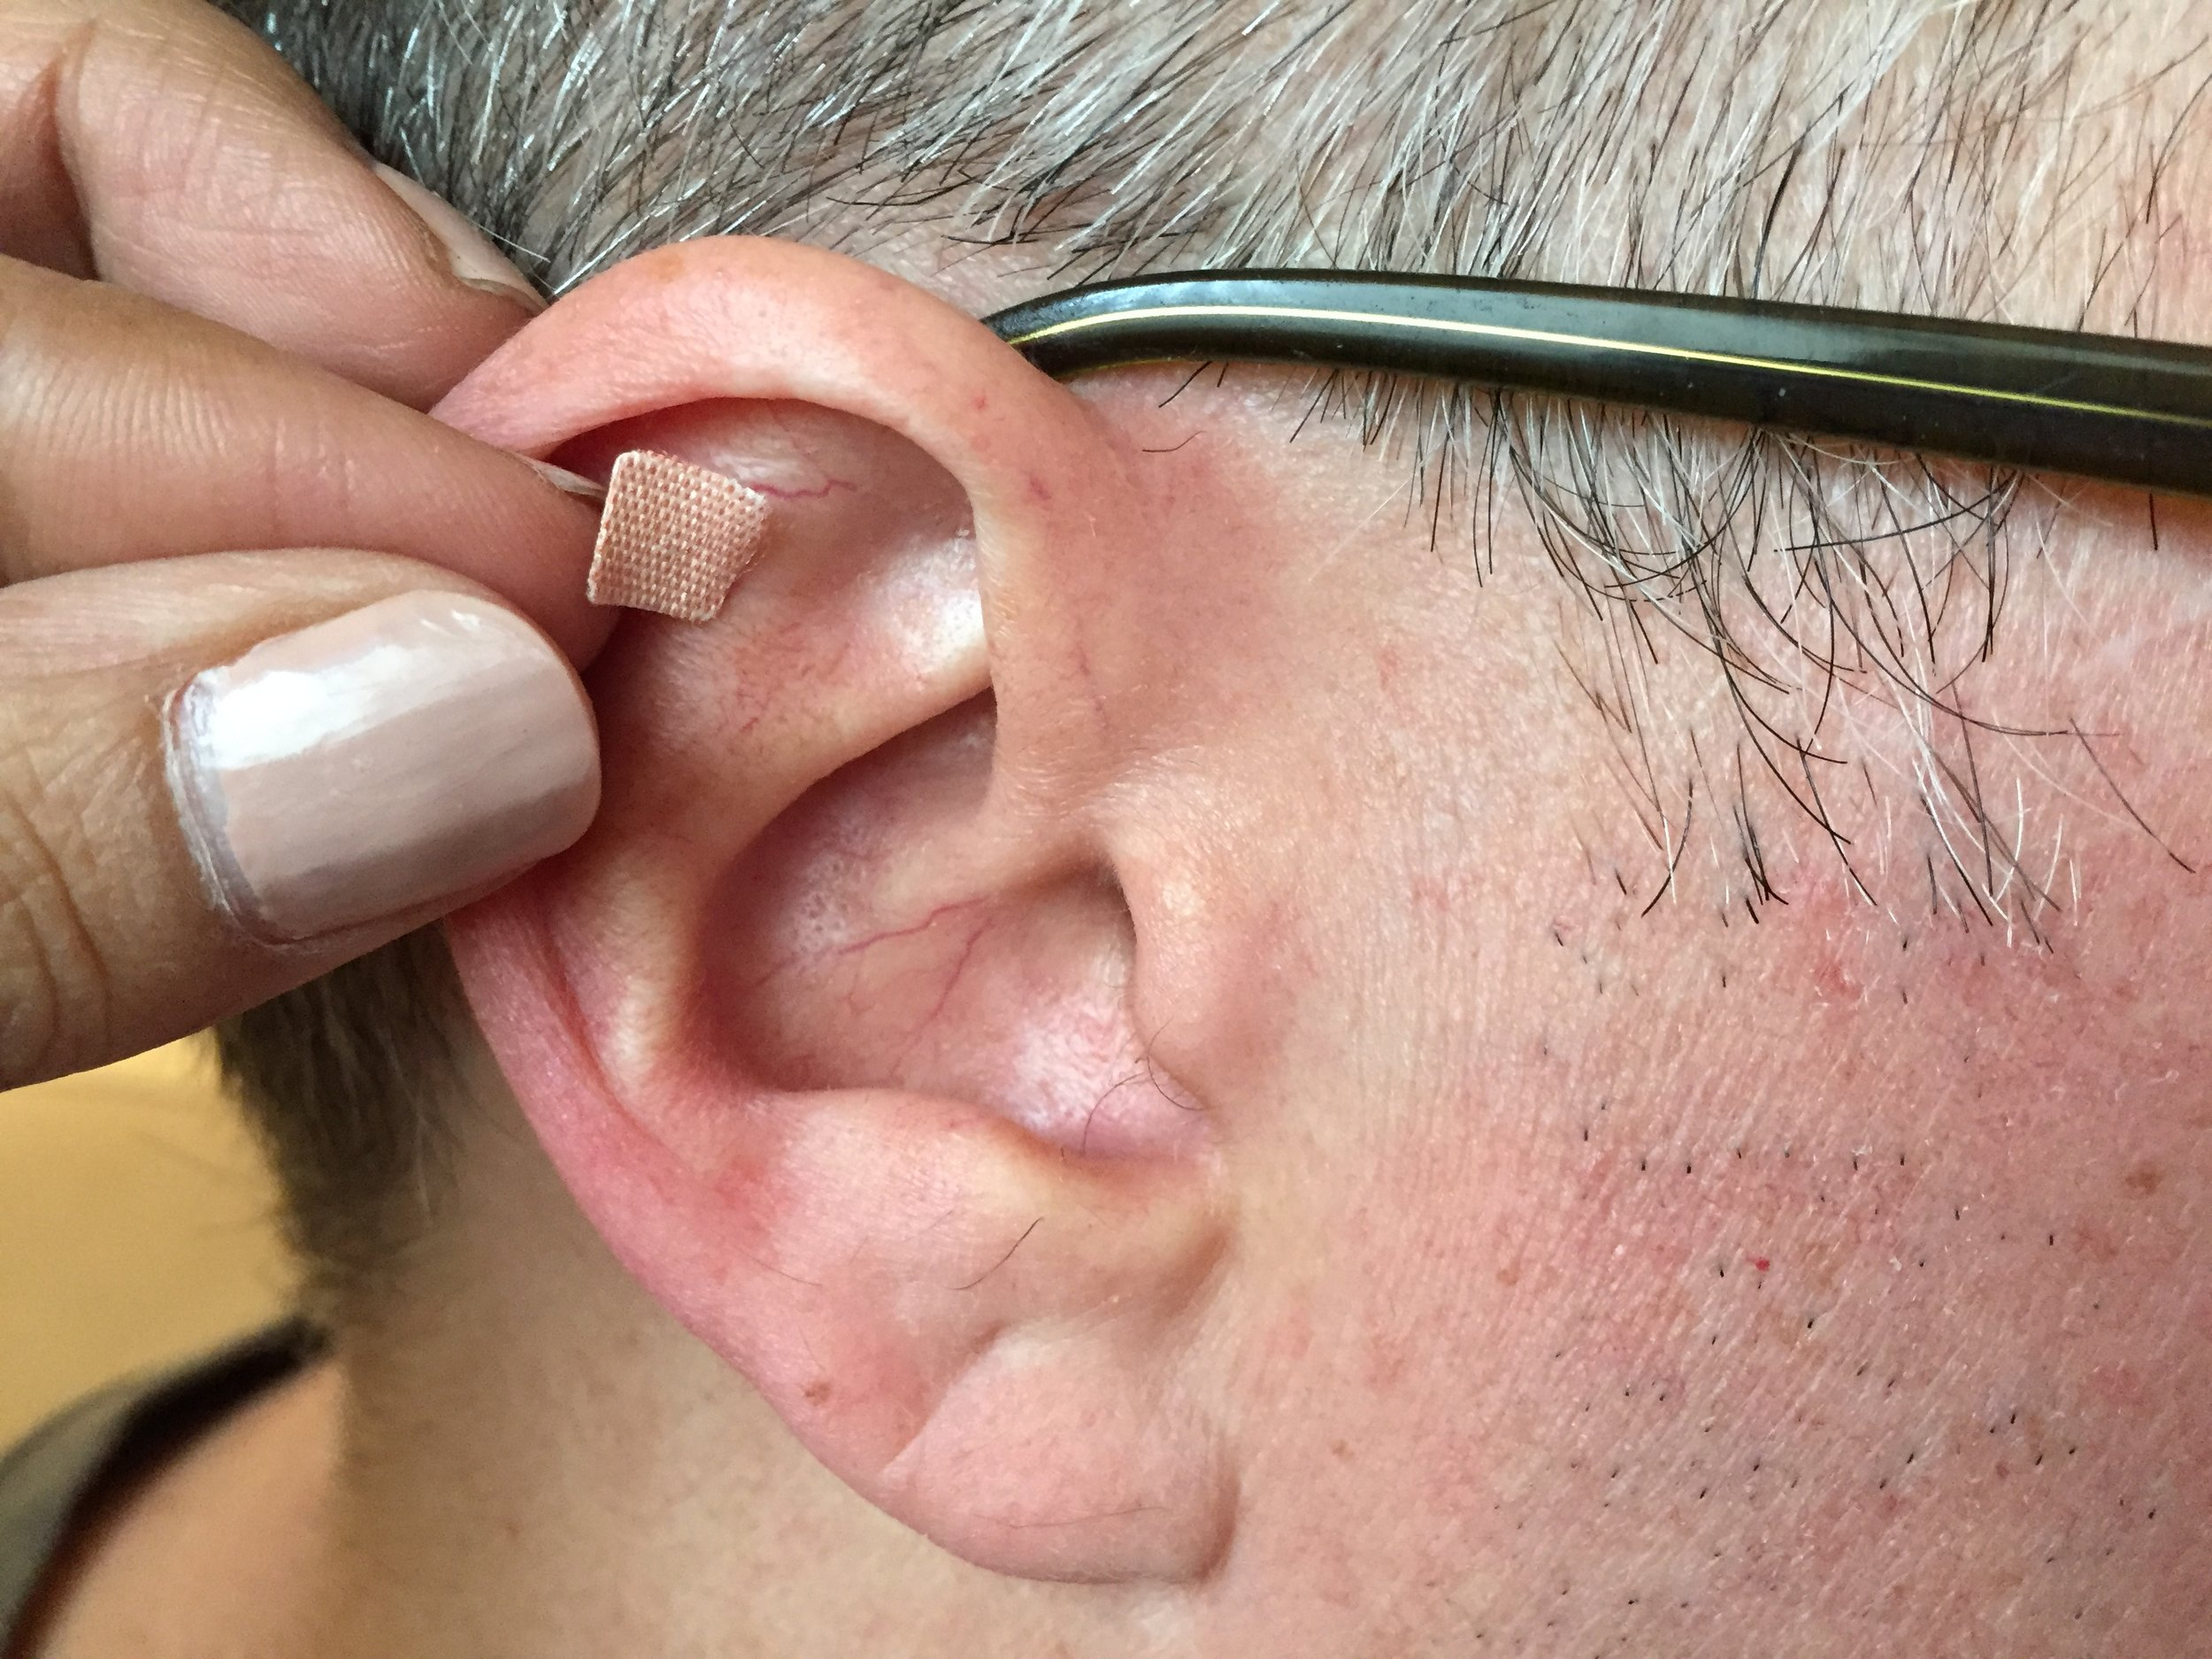 Vaccaria seeds can be applied to any point on the body, but because they are commonly applied to one of the hundreds of points on the ear, they are often referred to as earseeds.